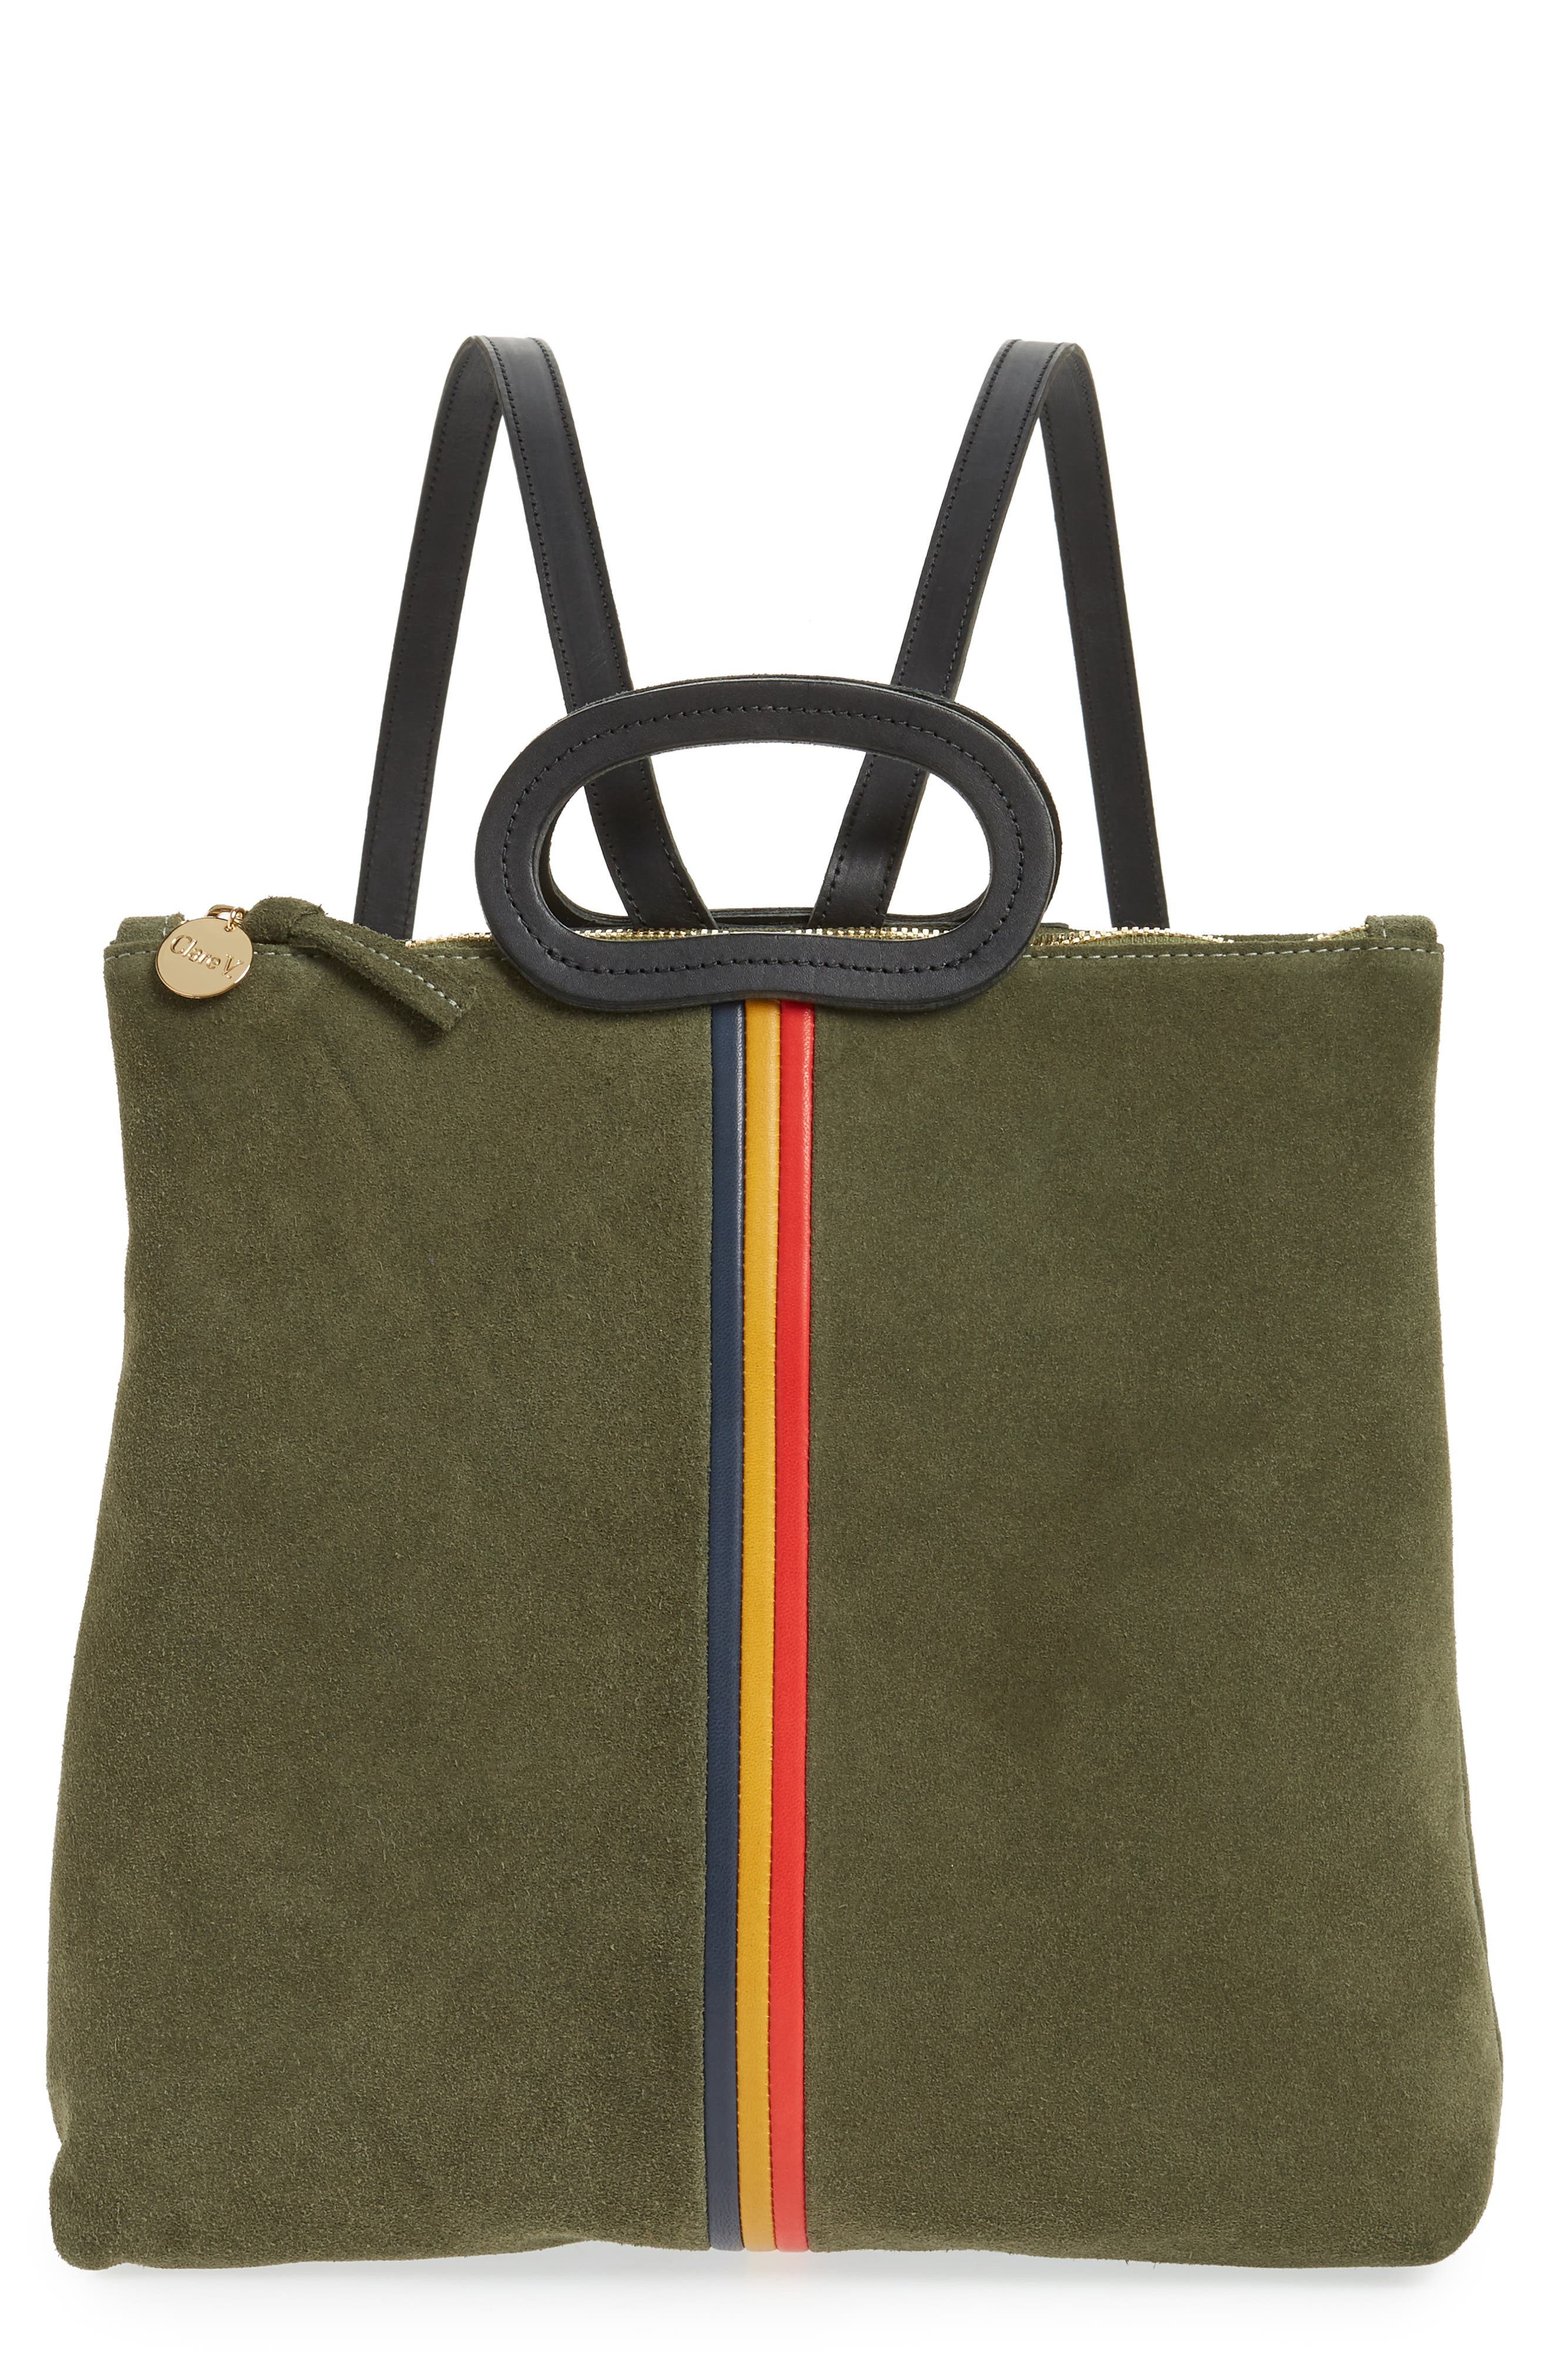 Marcelle Suede Backpack,                             Main thumbnail 1, color,                             ARMY SUEDE STRIPE